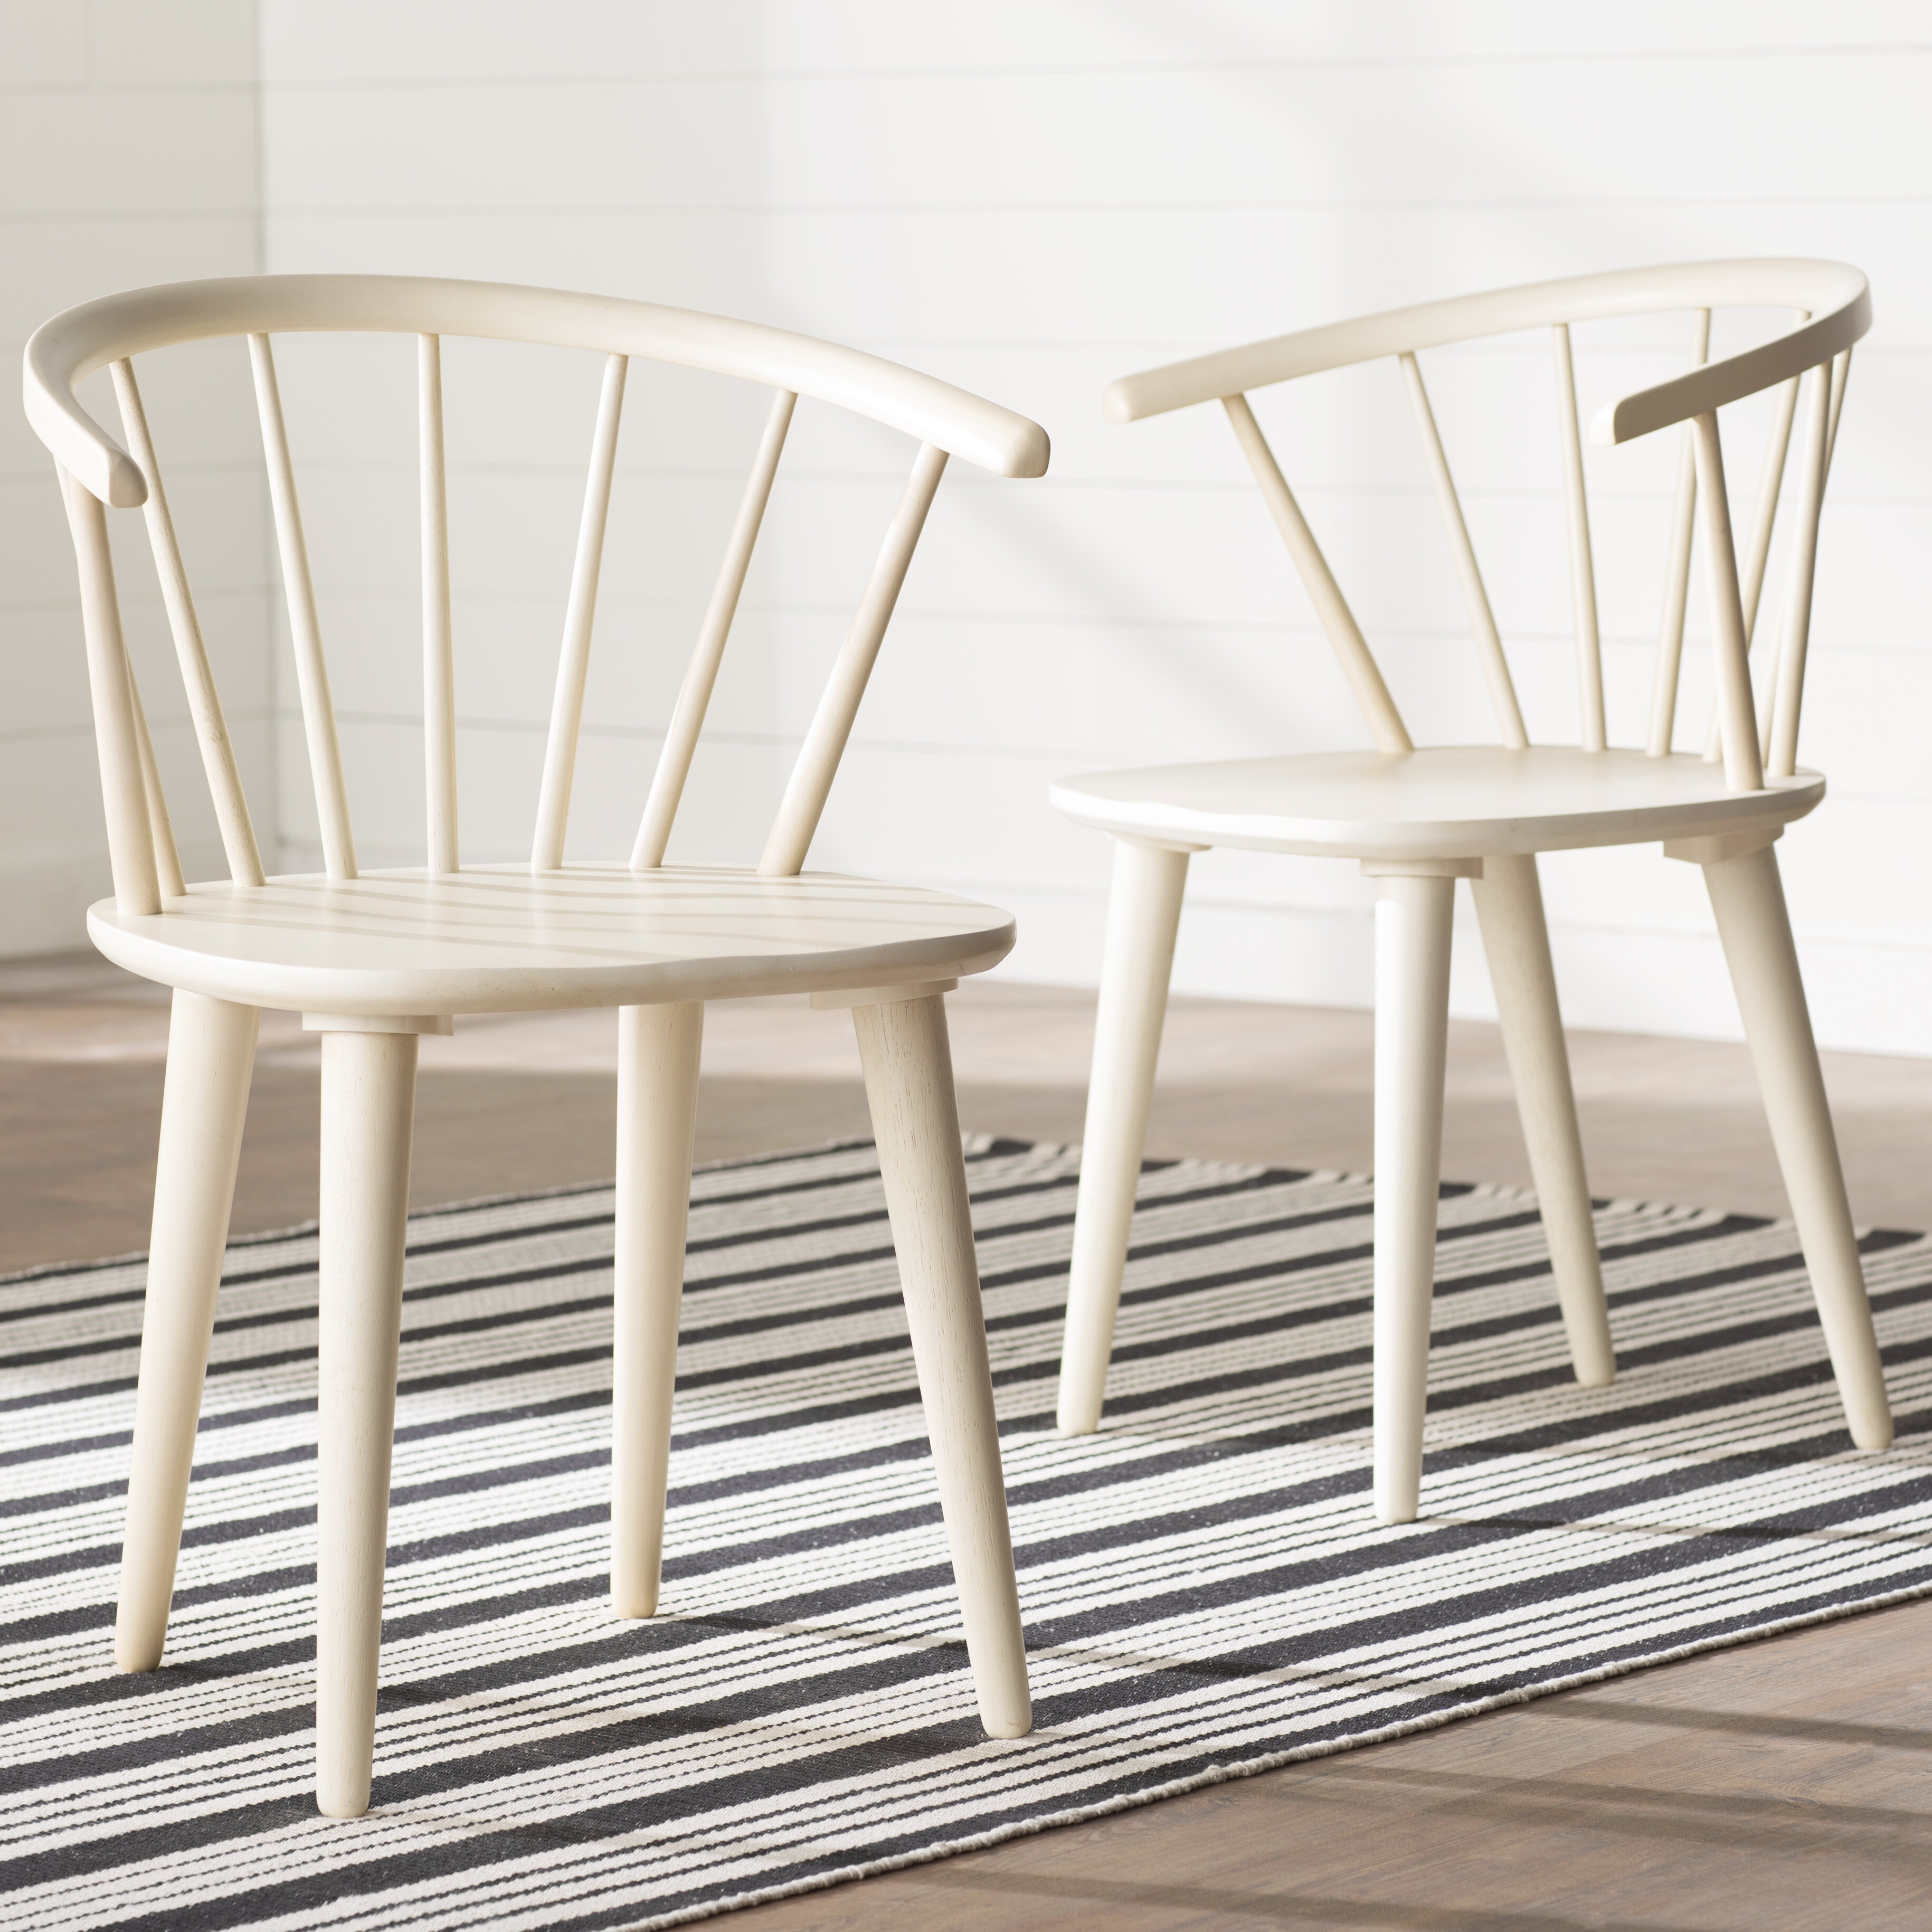 Similar Dining Chairs Below